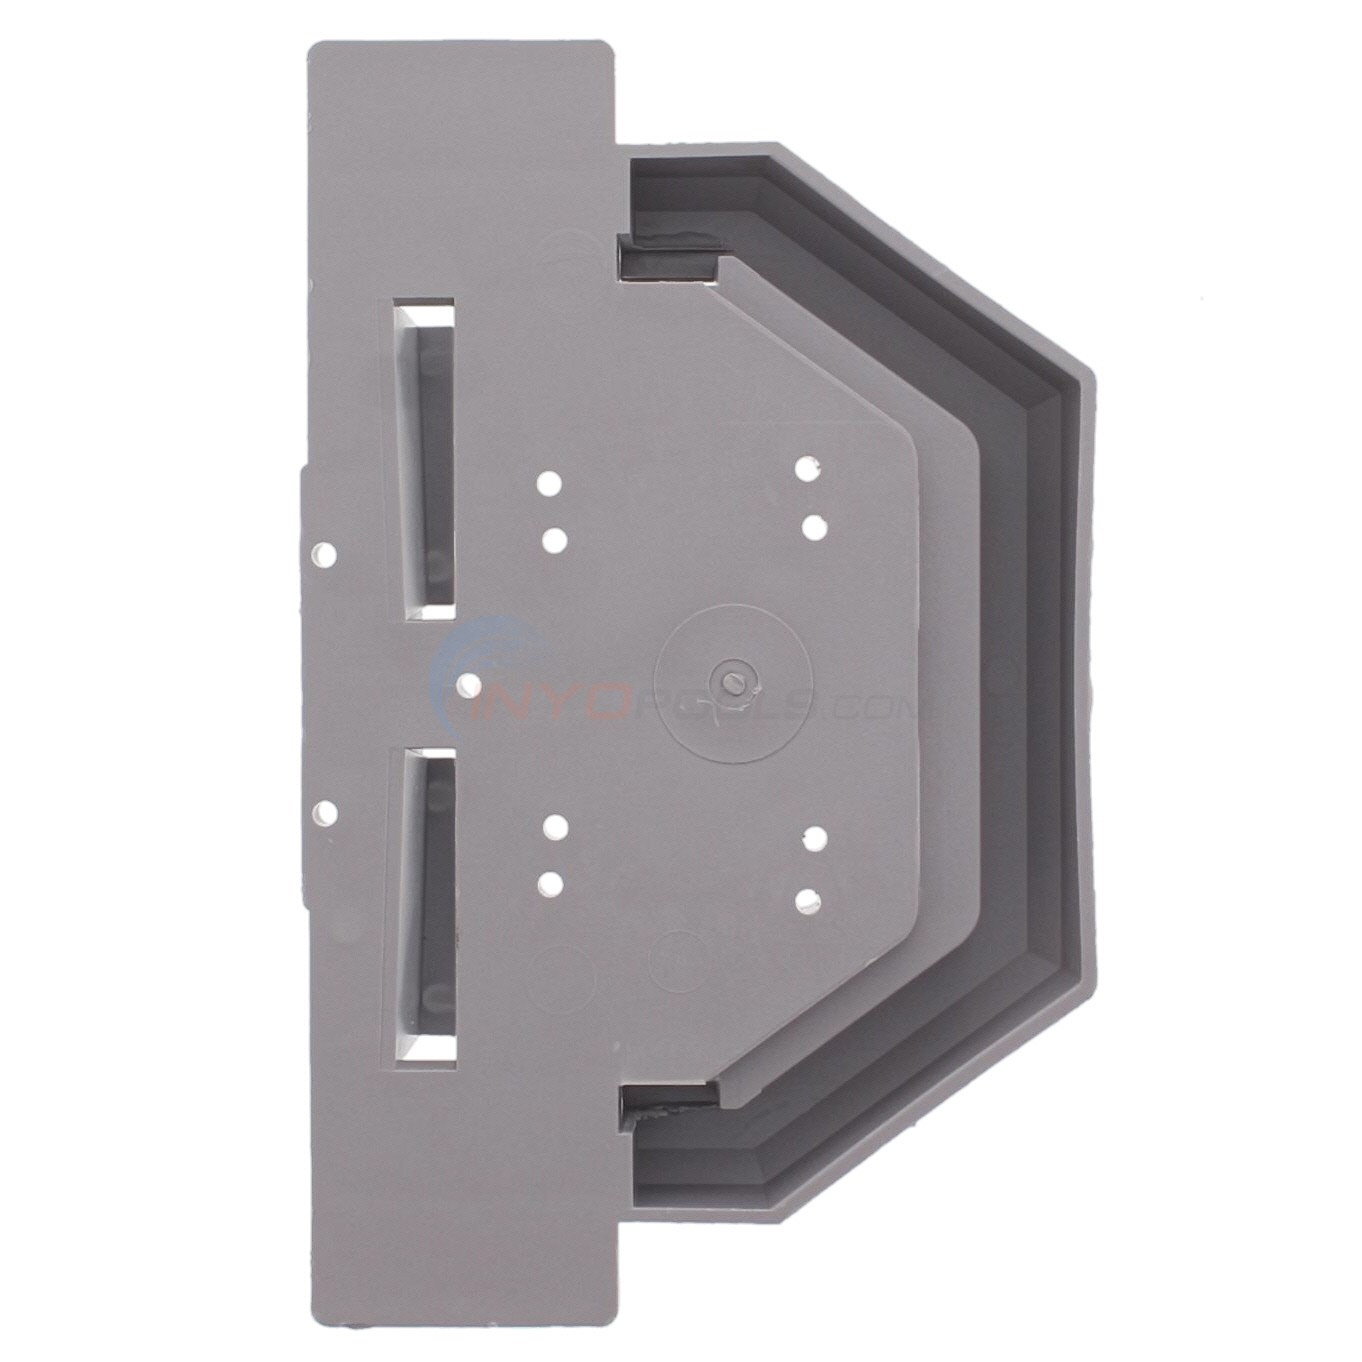 Wilbar Top and Bottom Plate - Resin (Single) - 1040033F00